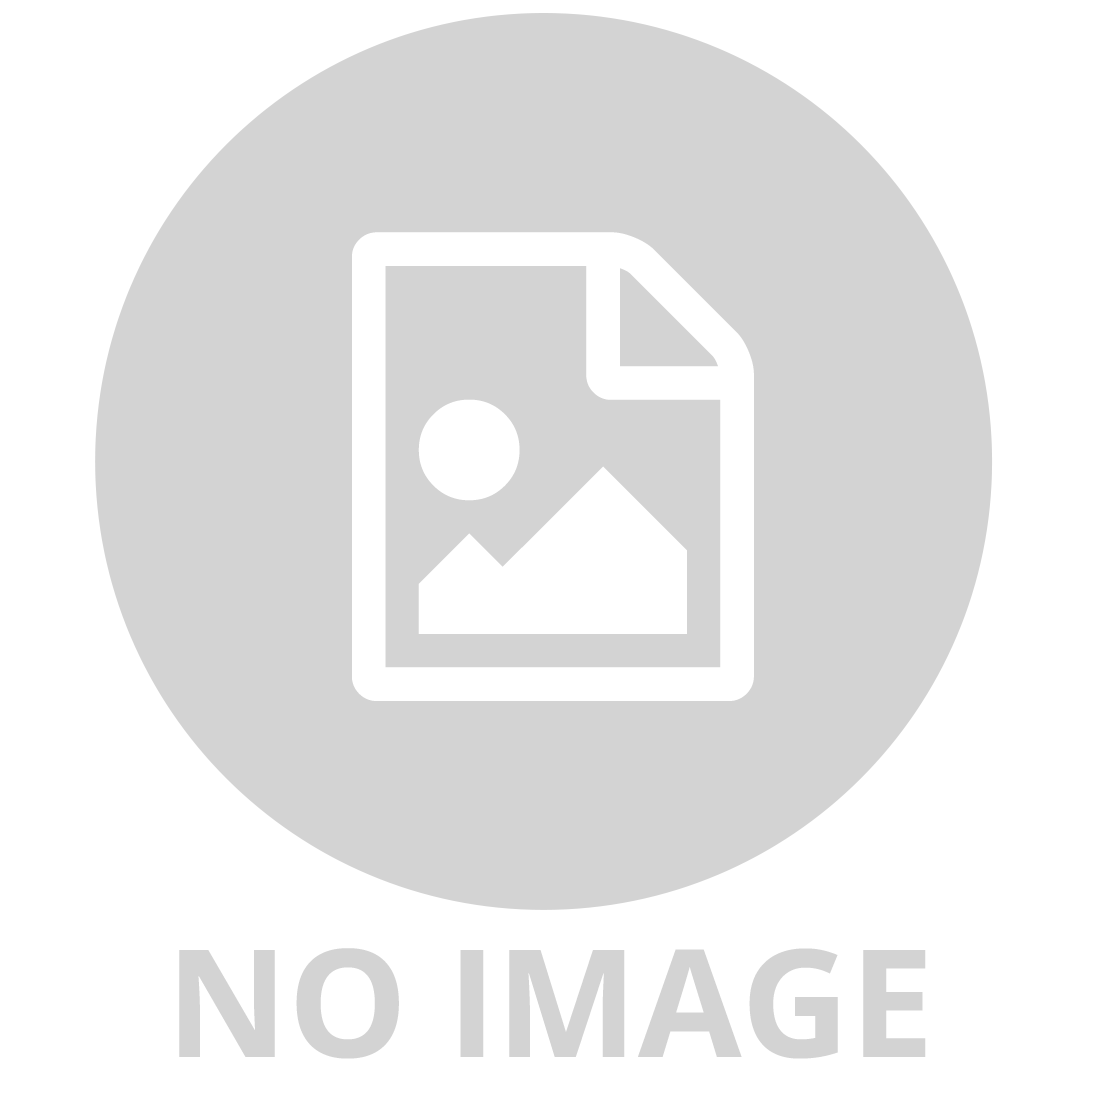 KID ROLLY JUNIOR JOHN DEERETRACTOR WTH FRONT END LOADER AND BACKHOE PEDAL TRACTOR